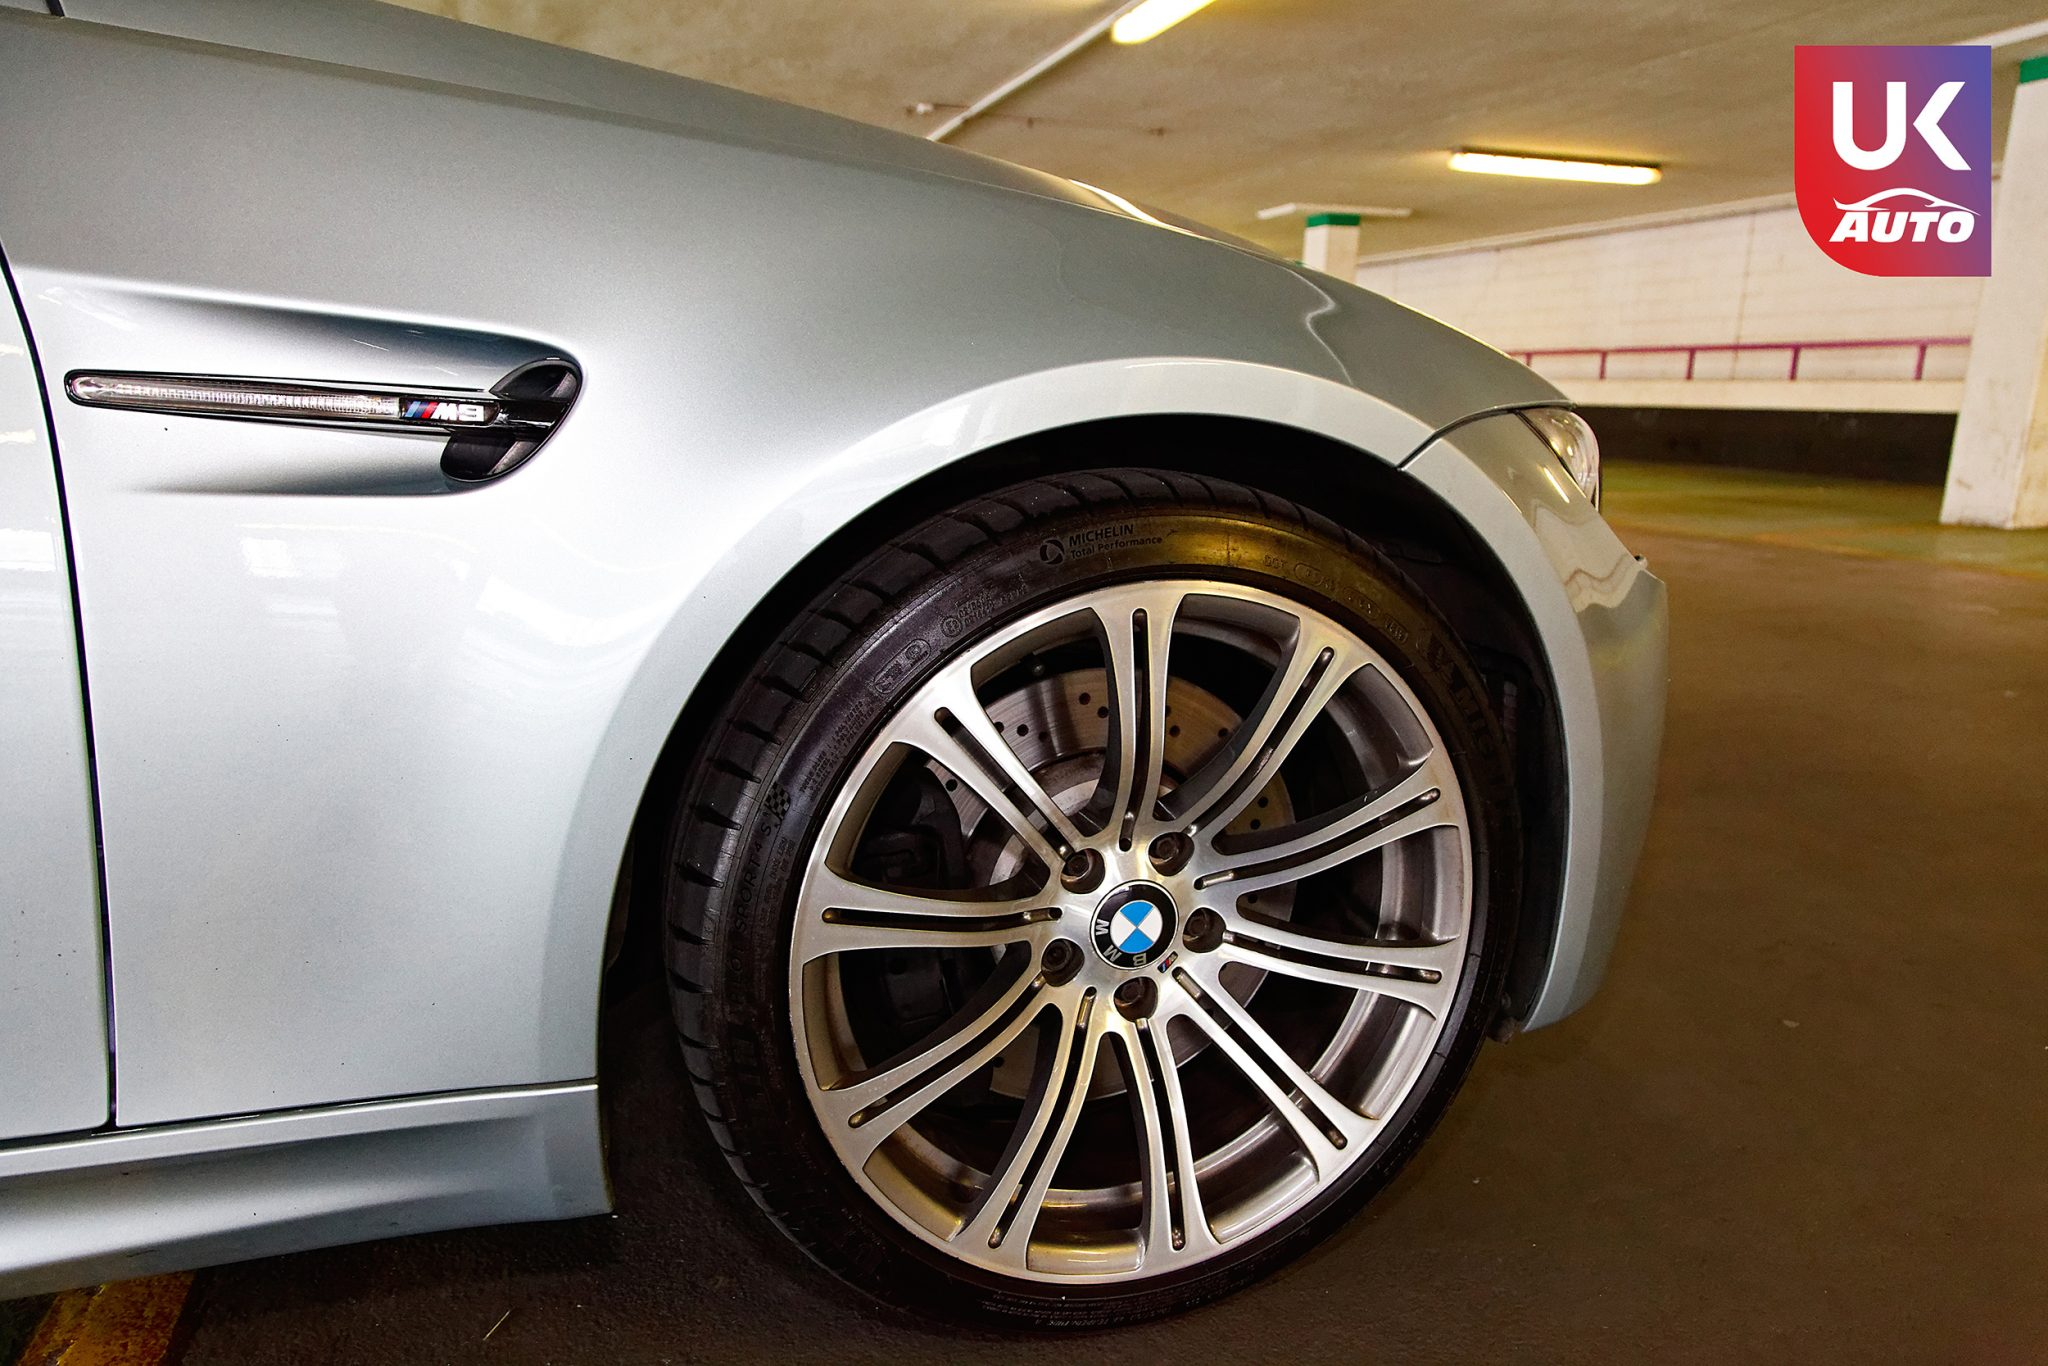 ukauto uk import bmw angleterre bmw m3 rhd e92 v8 mandataire uk angleterre voiture7 - Felicitation a Philippe BMW M3 E92 RHD POUR IMPORTER UNE VOITURE EN ANGLETERRE